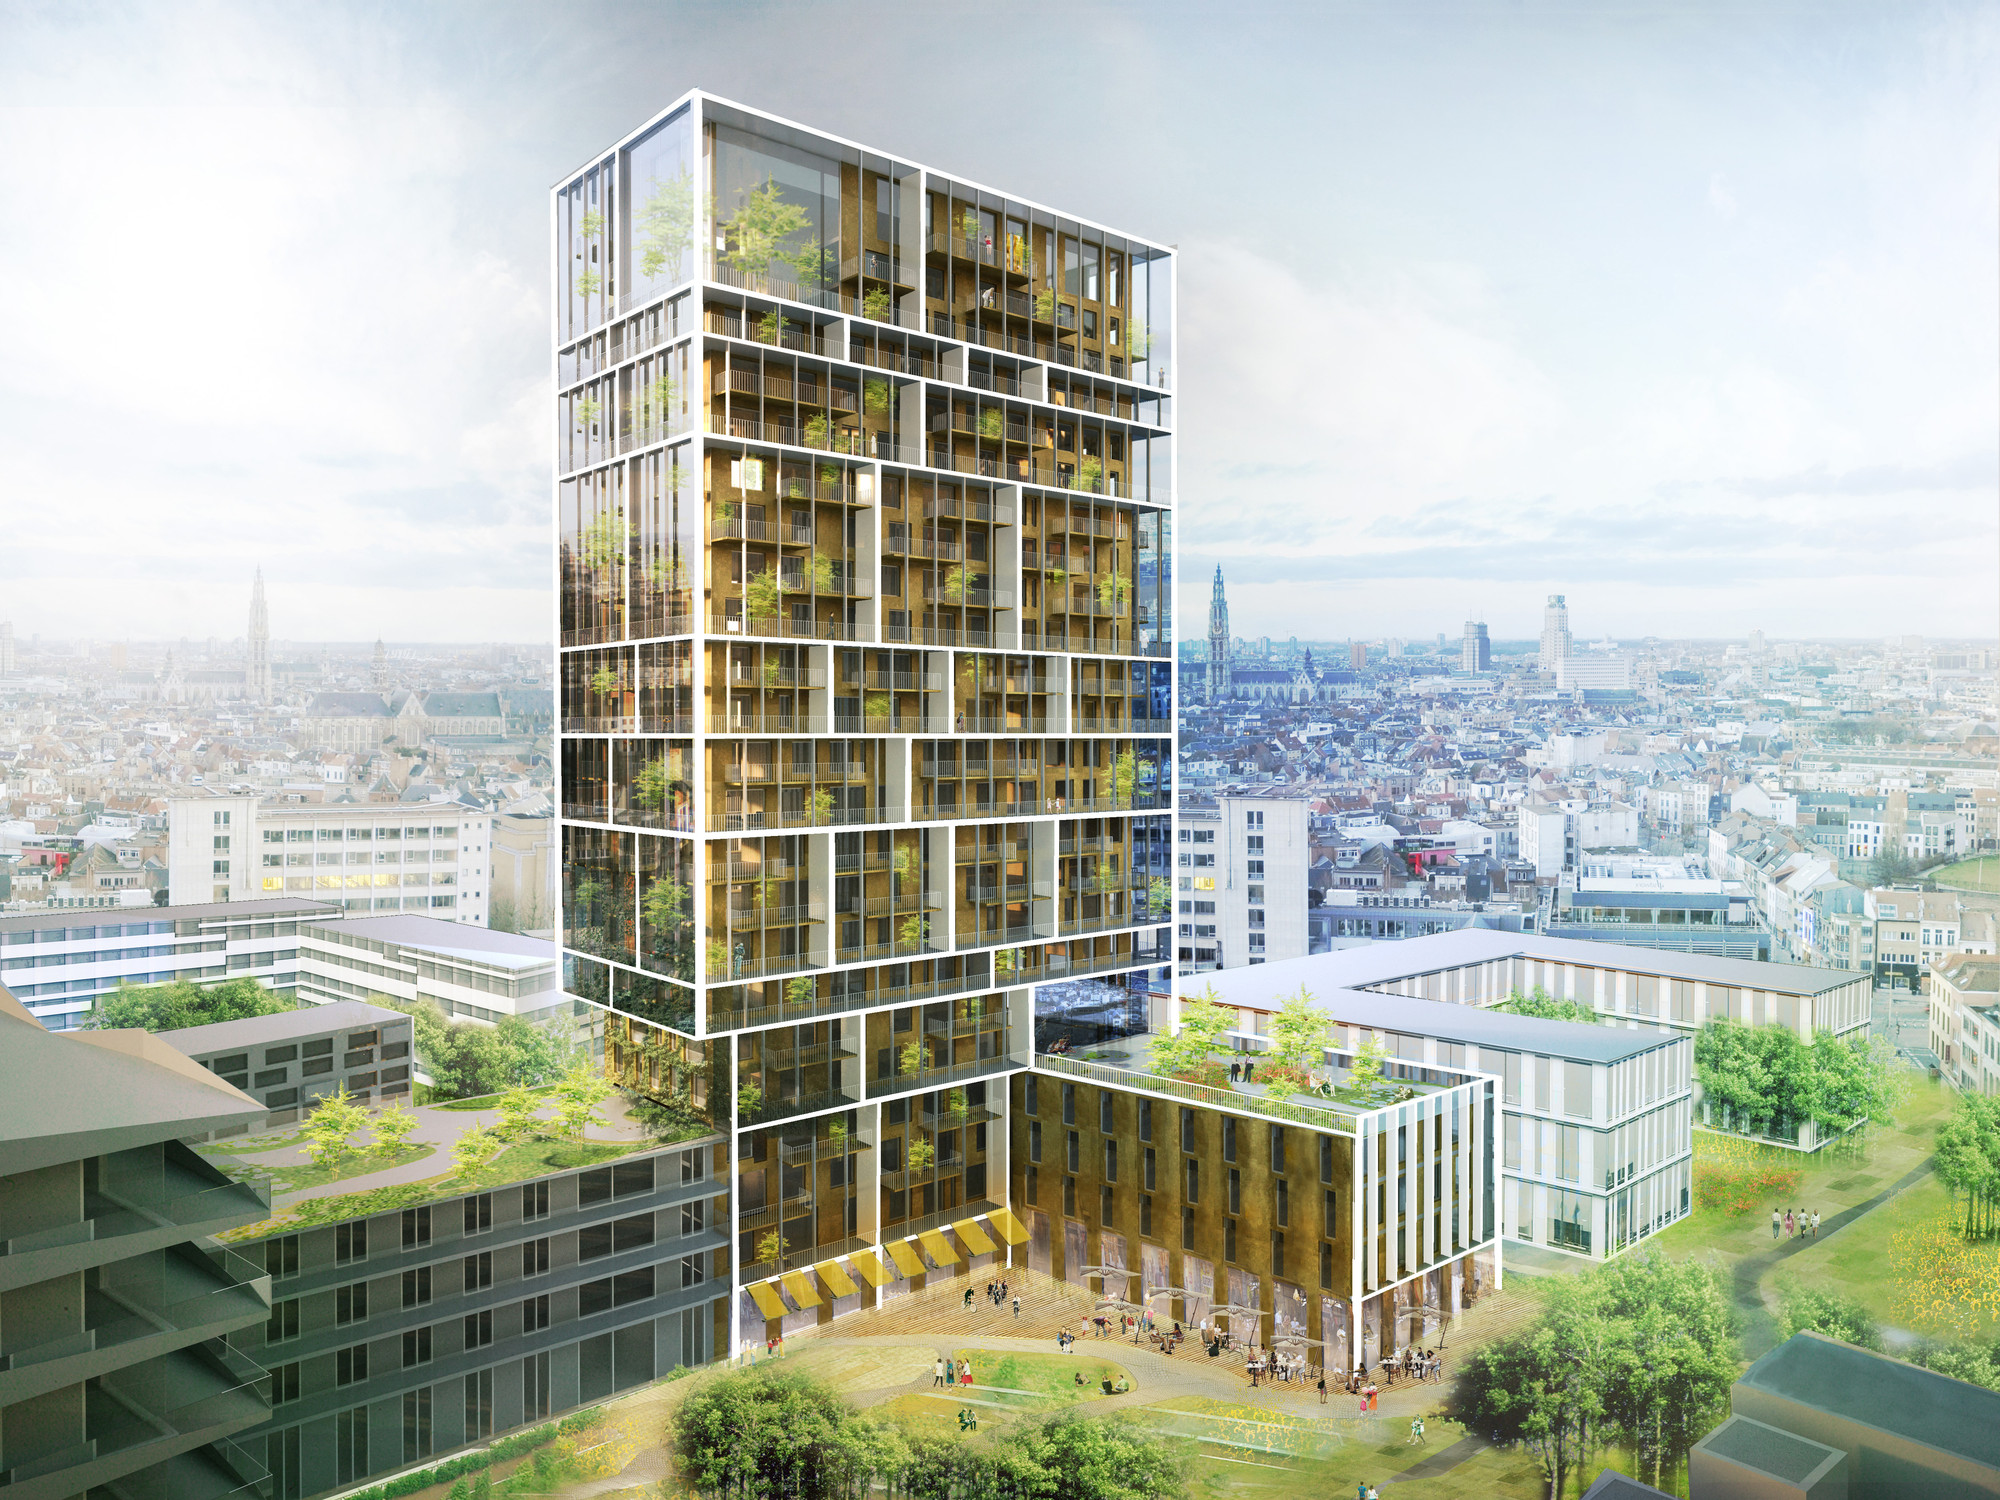 C f m ller chosen to design antwerp residential tower archdaily - Studio ontwikkeling m ...